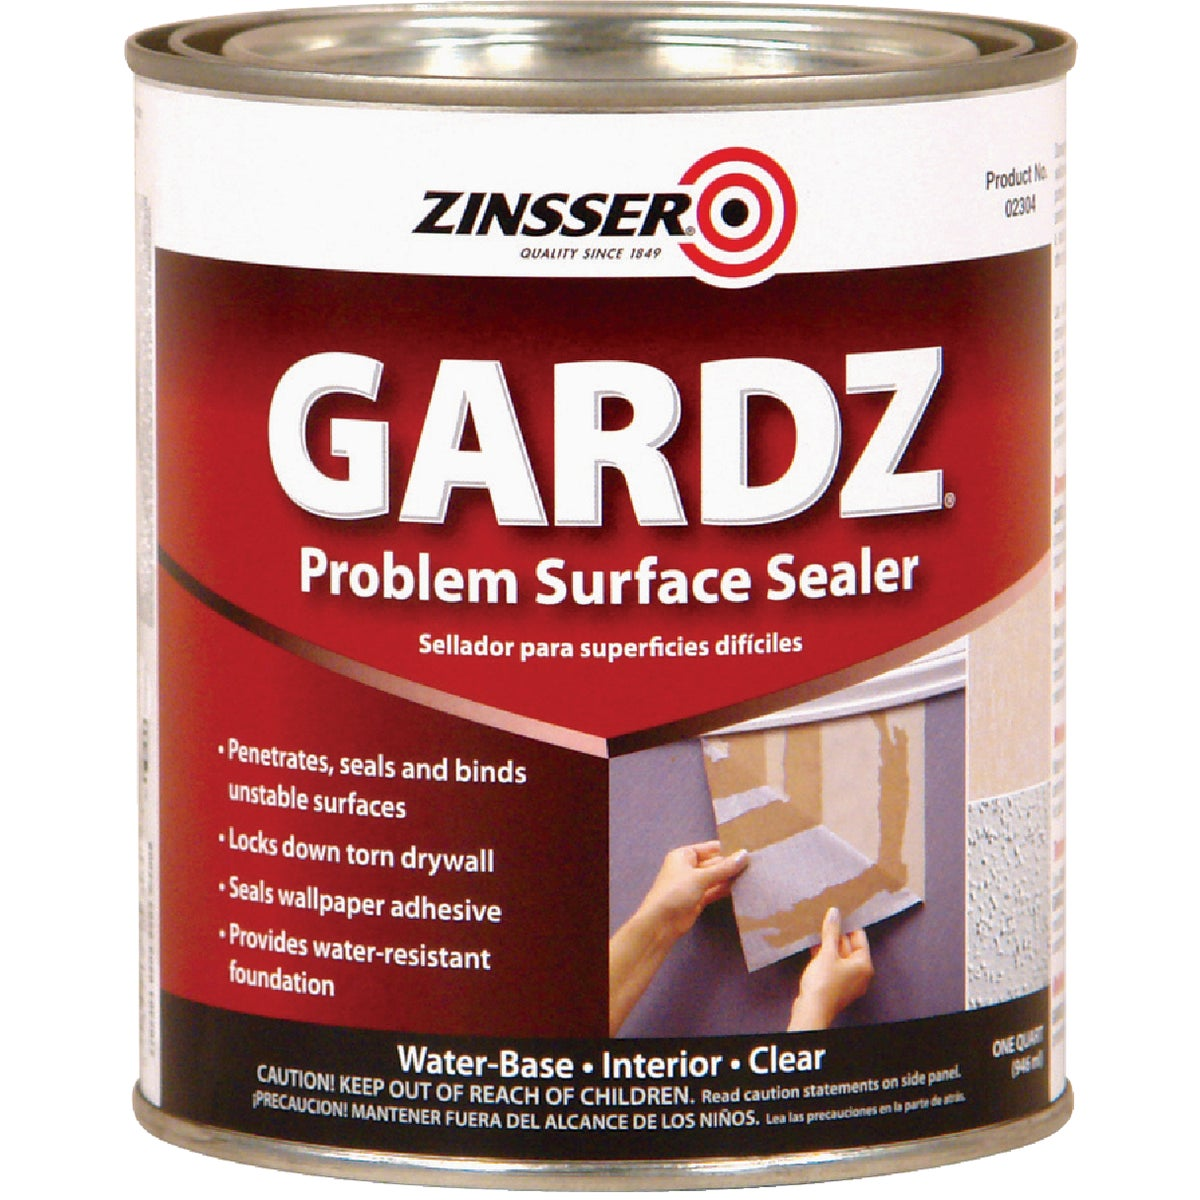 DAMAGED DRYWALL SEALER - Z2304 by Rustoleum